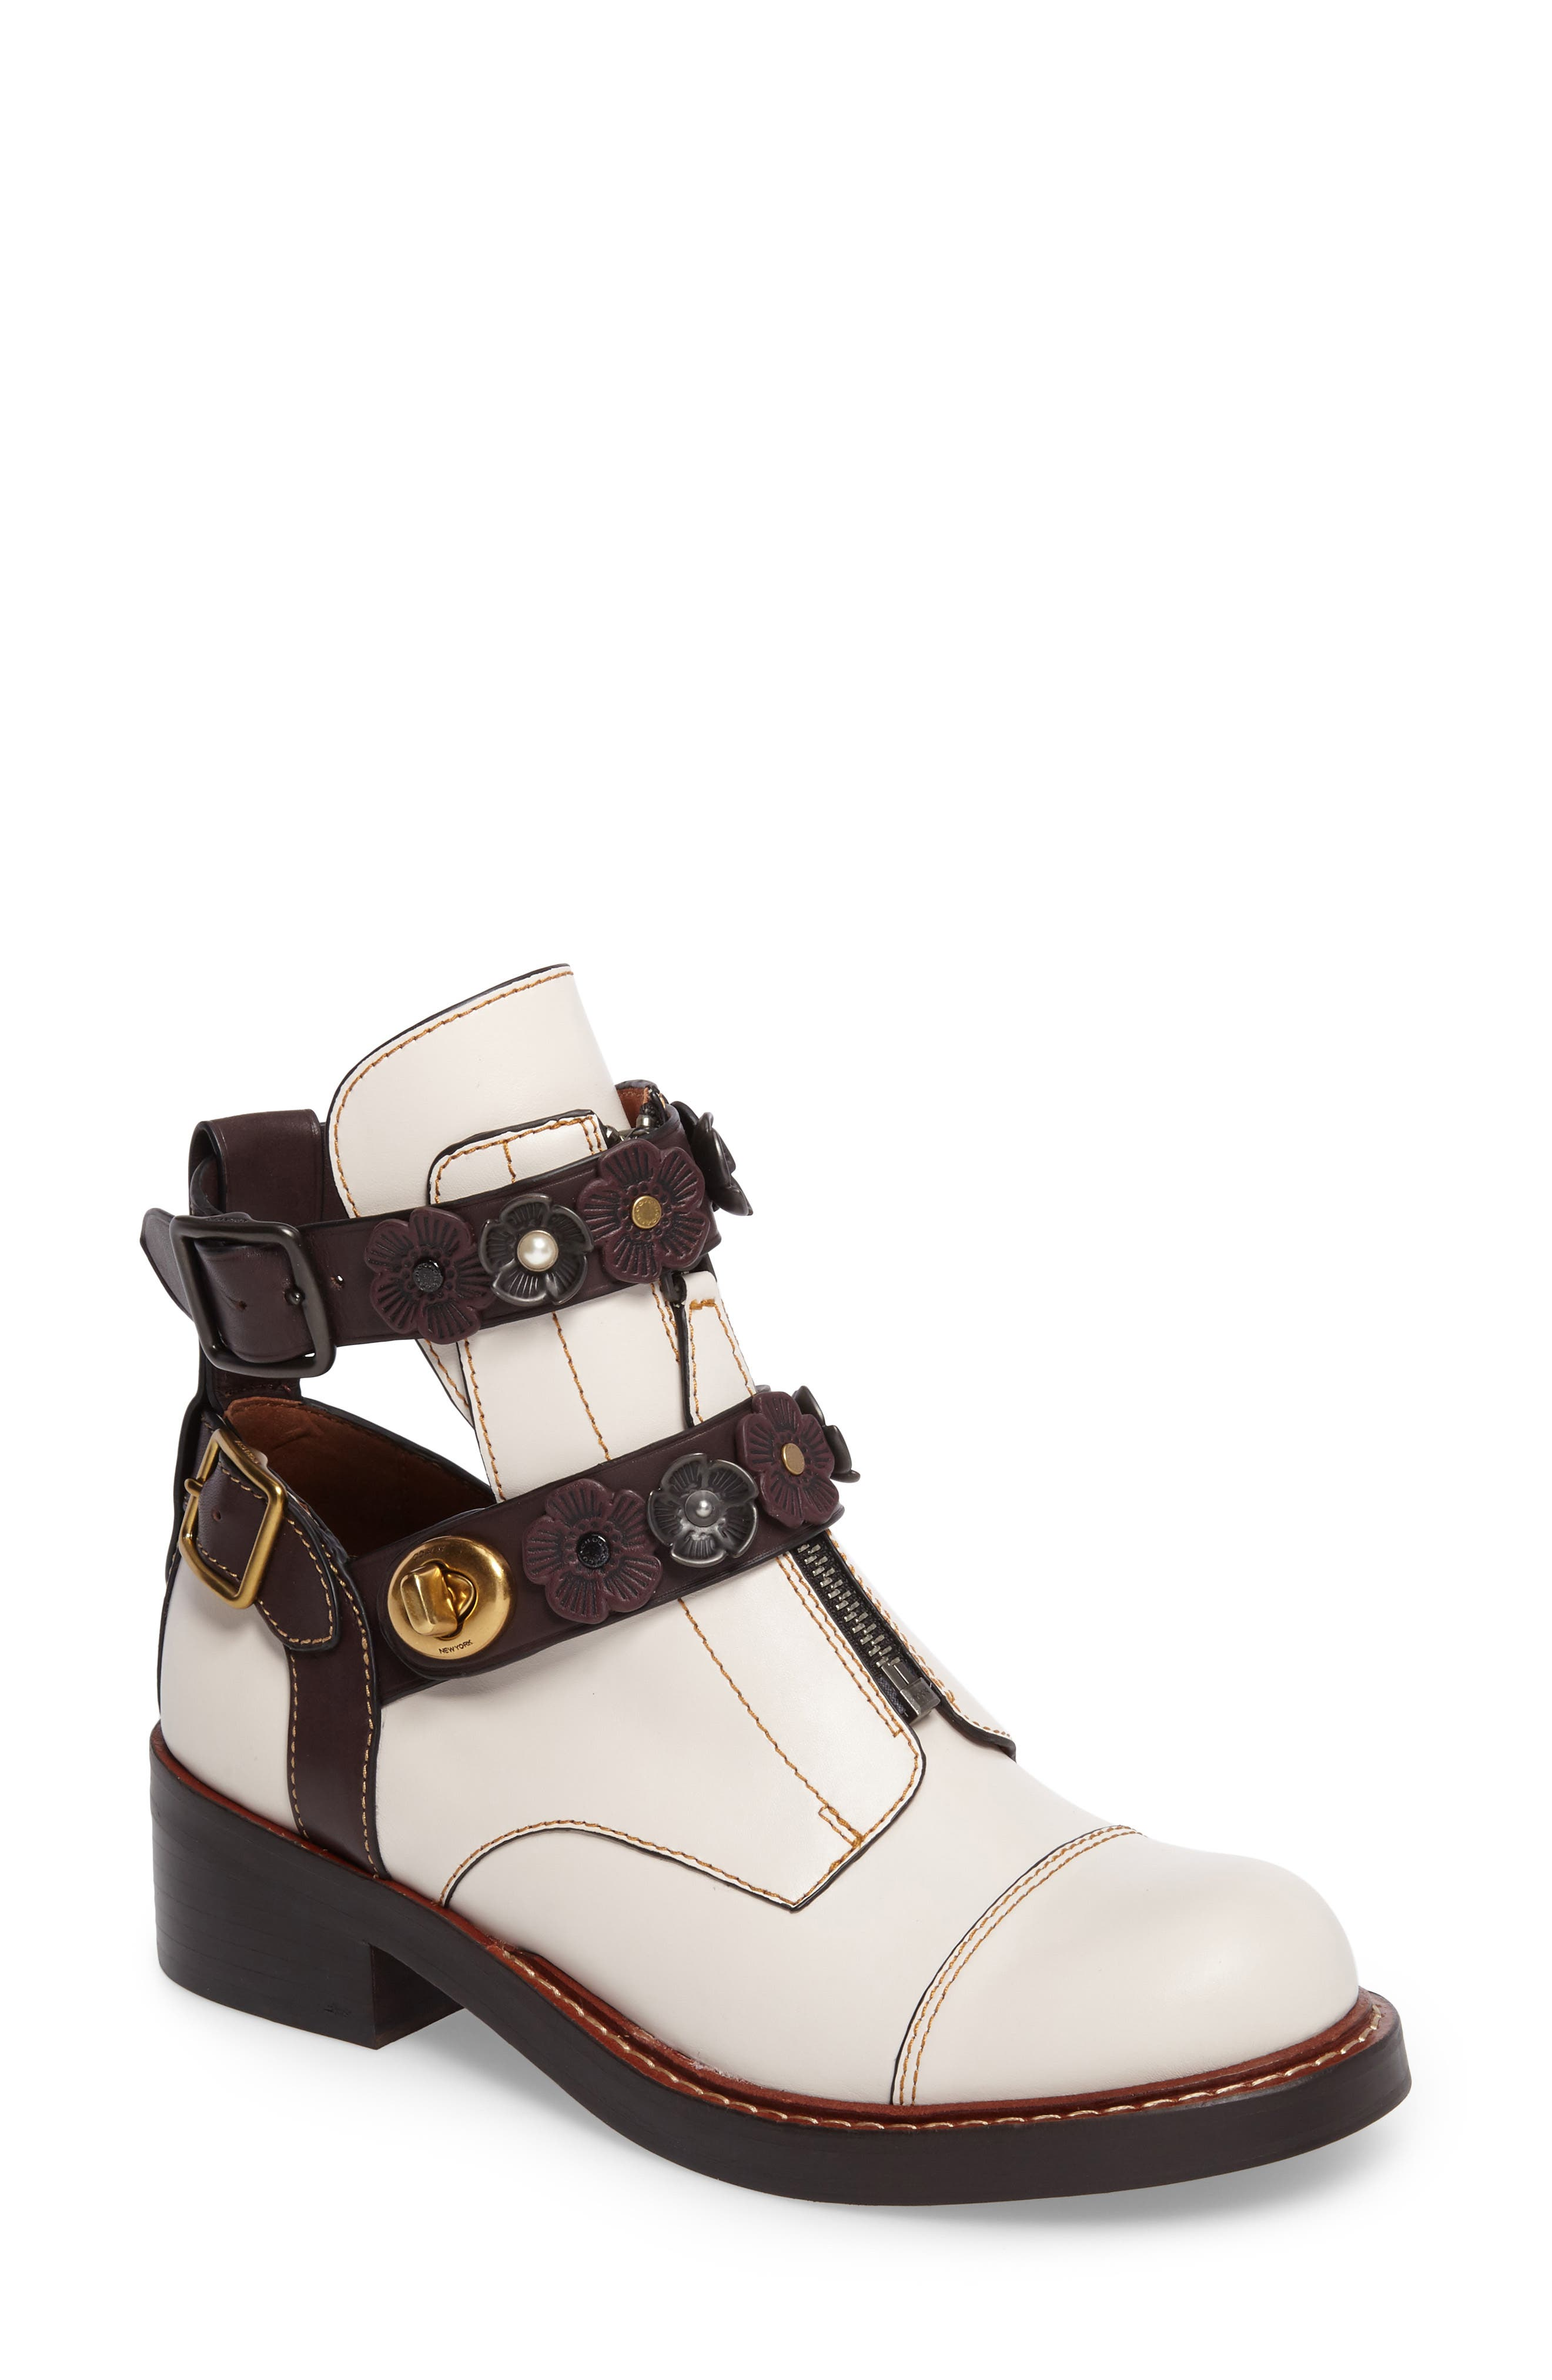 Alternate Image 1 Selected - COACH Moto Cutout Bootie (Women)